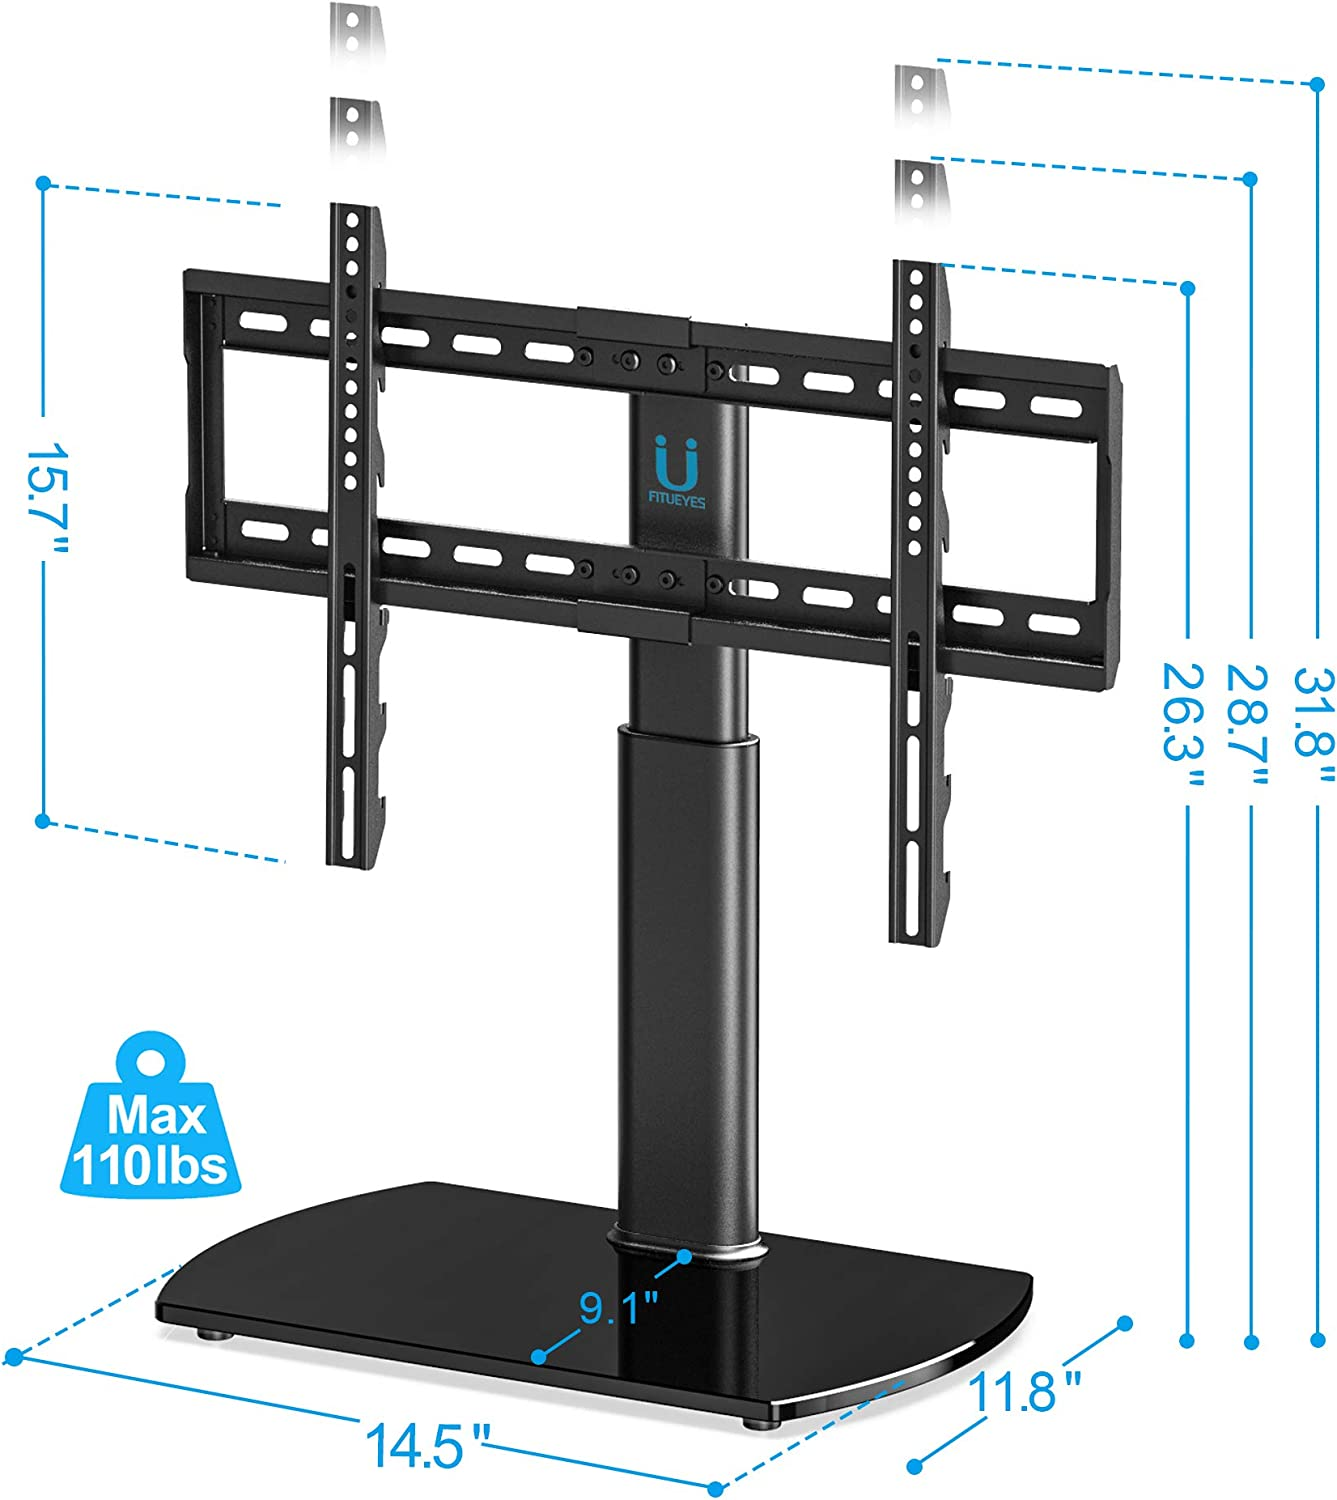 FITUEYES Universal TV Stand Base Swivel Tabletop TV Stand with Mount for 32 to 65 inch Flat Screen TV 80 Degree Swivel, 3 Level Height Adjustable,Tempered Glass Base,Holds up to110 lbs Screens